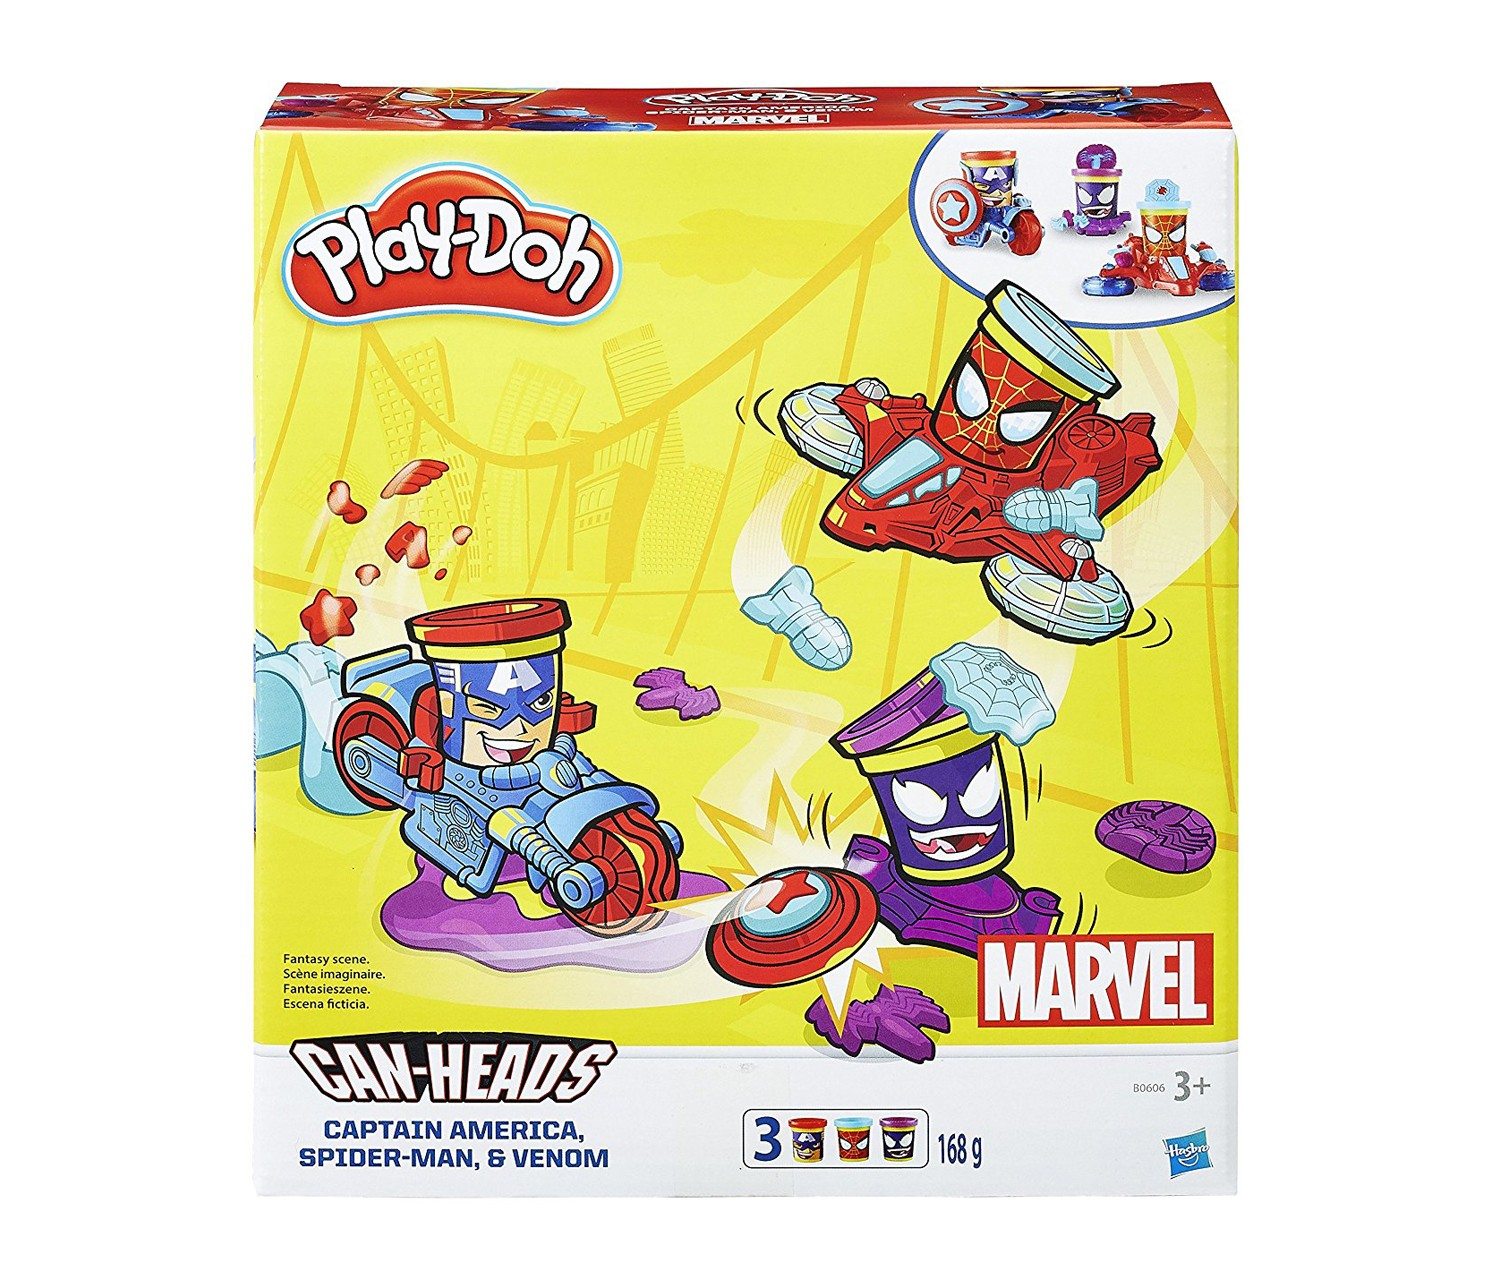 Play-Doh B0606 Marvel Can Heads Vehicle Toy, Red/Blue